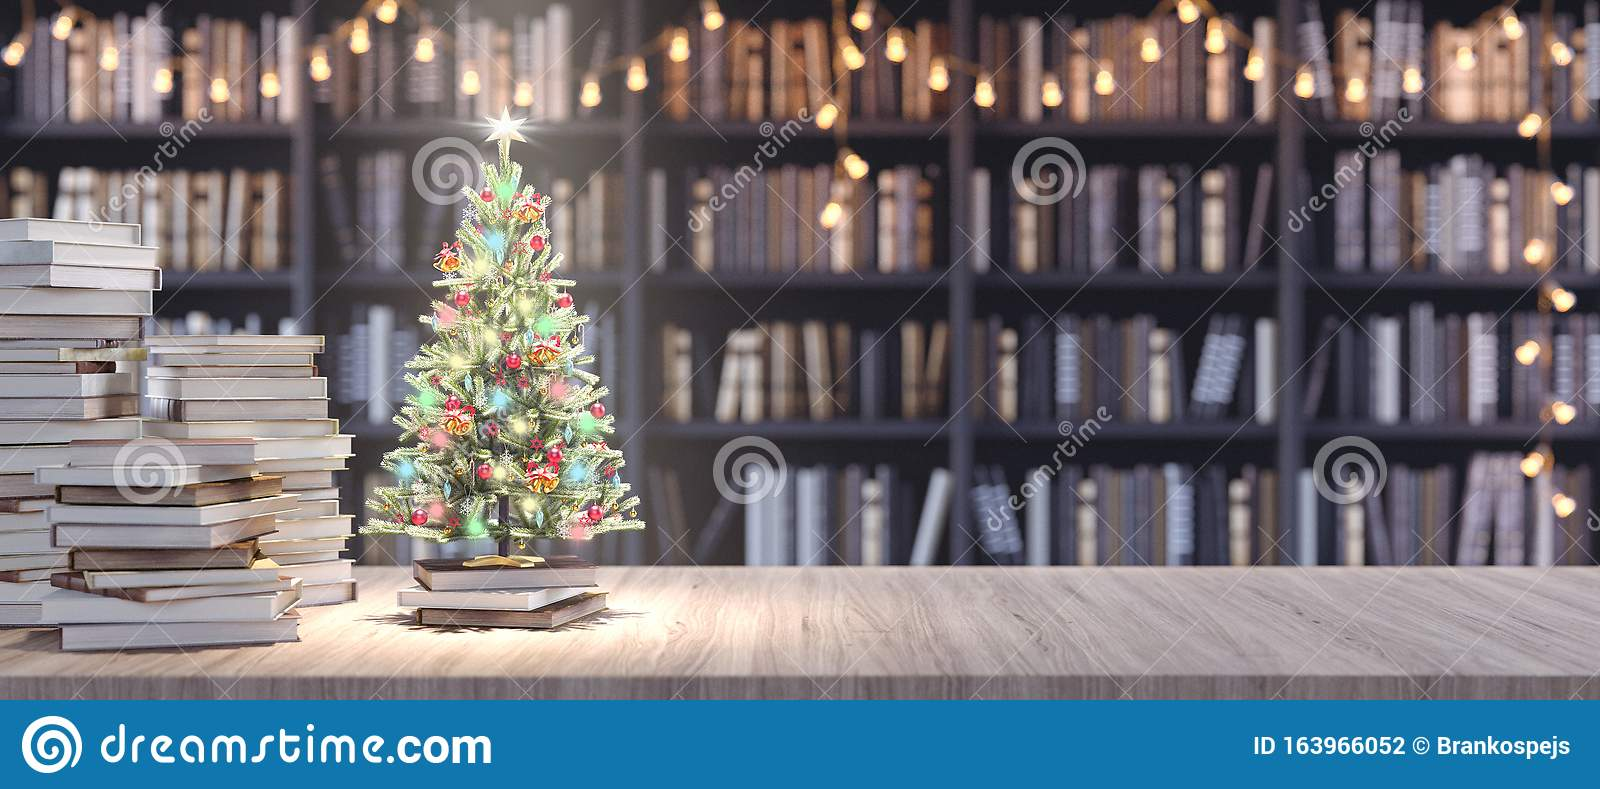 Decorated Christmas Tree On Bookshelf In The Library With Old Books Holidays In Bookstore Concept 3d Render Stock Illustration Illustration Of Celebration Indoor 163966052